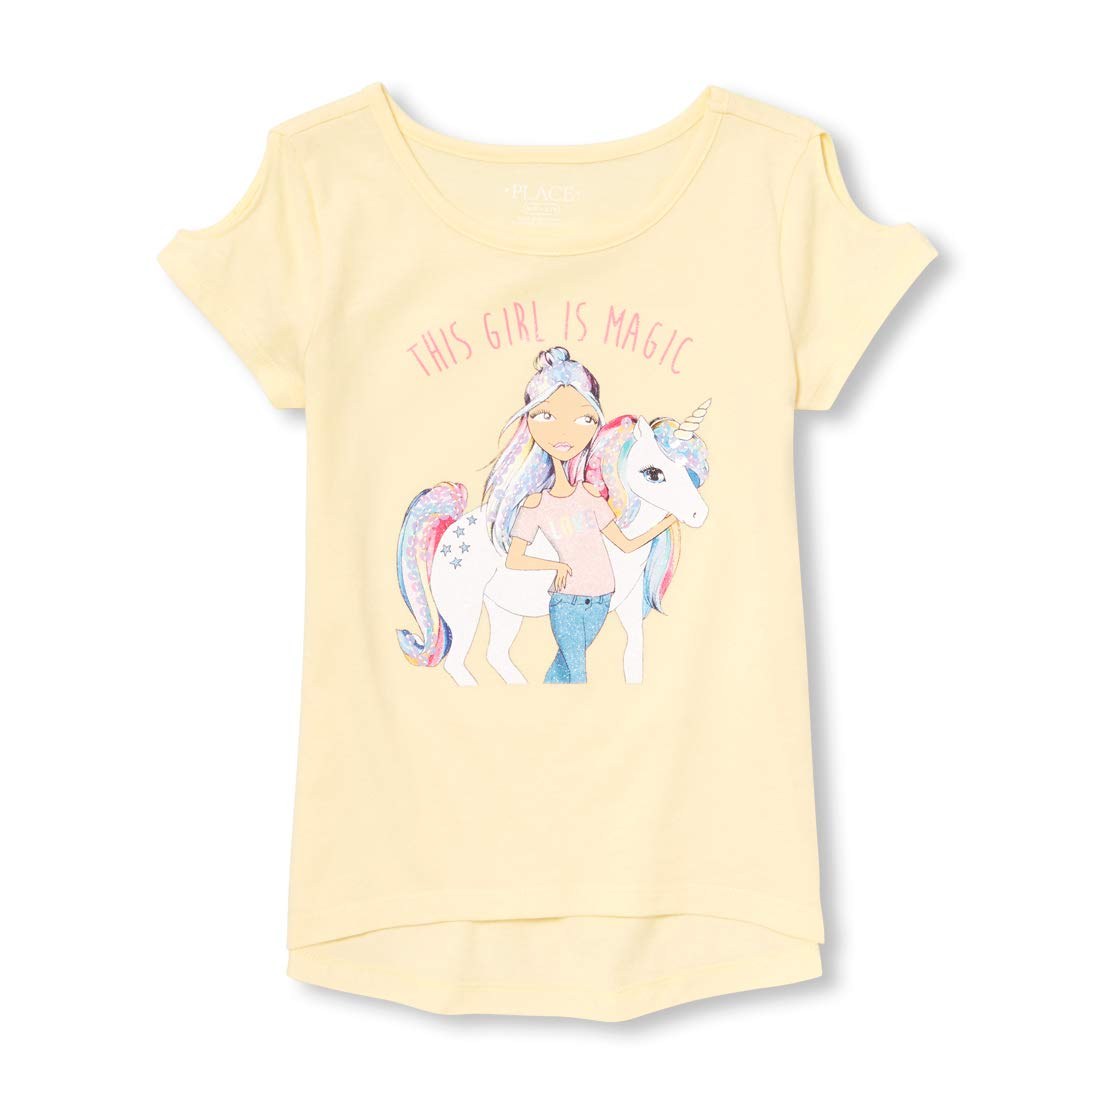 The Childrens Place Big Girls Short Sleeve Graphic T-Shirt